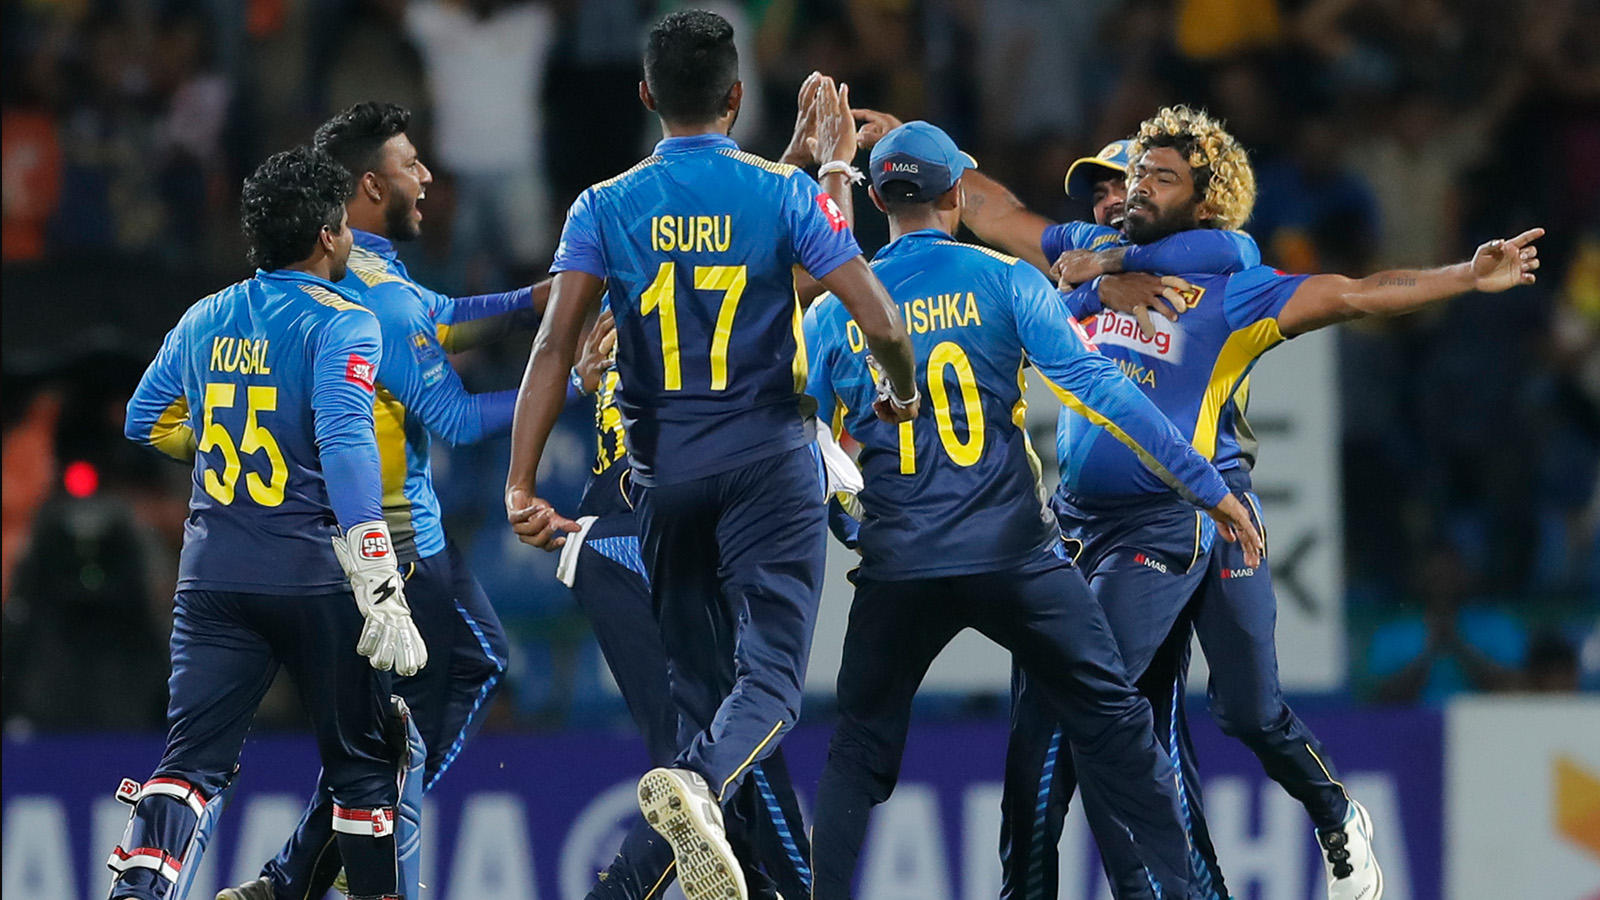 ten-sri-lankans-opt-out-of-pakistan-cricket-tour-over-security-fears